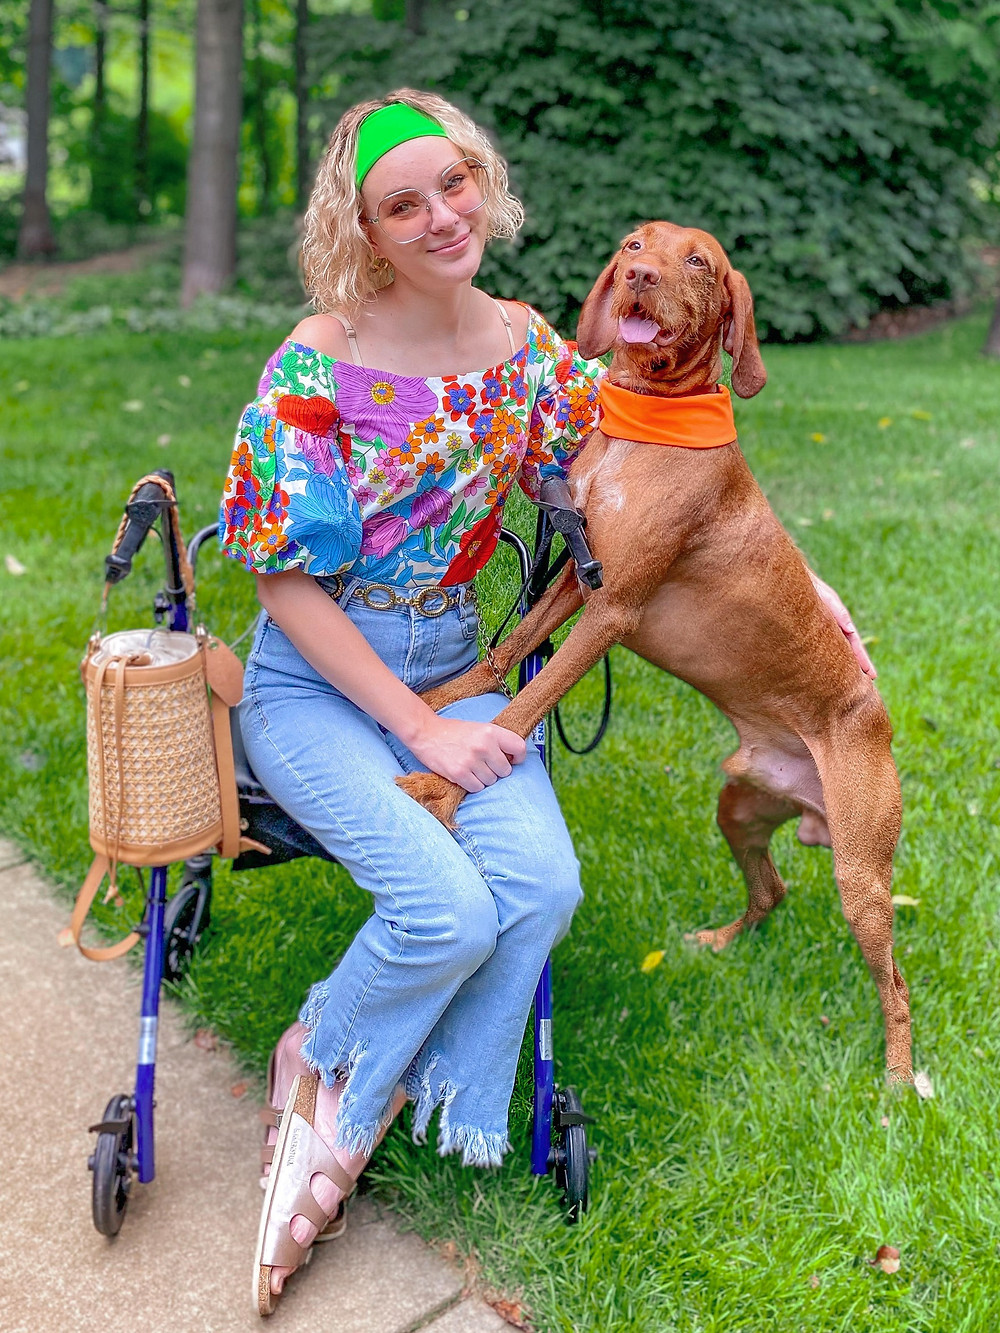 Cienna sits on her blue walker wearing a lime green cooling headband, tinted silver sunglasses, a rainbow floral puff sleeve top, gold chain belt, high waisted flared fringed blue jeans, and Birkenstock slide on sandals. Her service dog Piper has his paws on her and is wearing a bright orange cooling headband around his neck. They are both smiling at the camera.